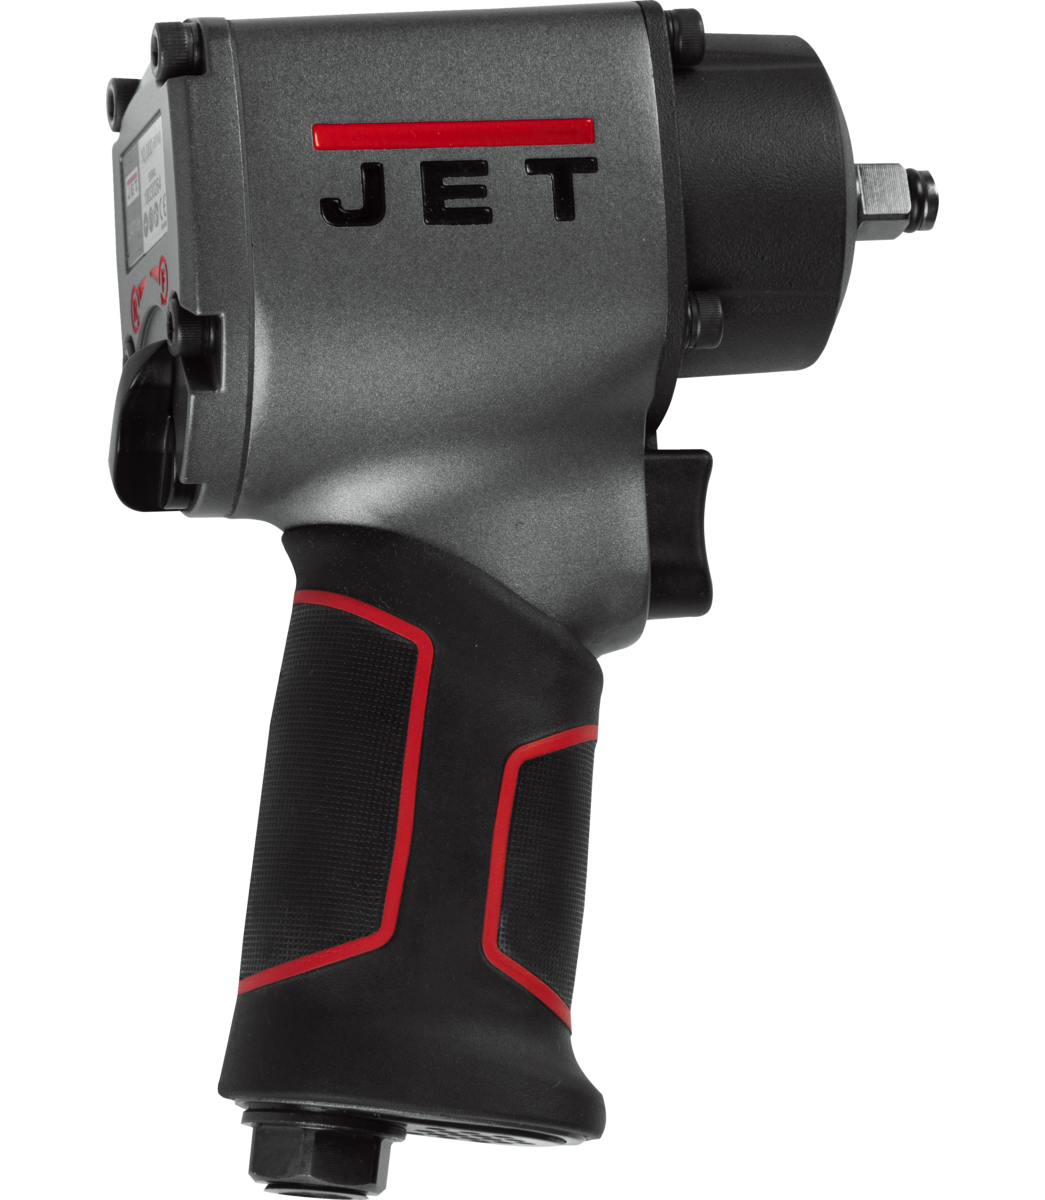 "JAT-106, 3/8"" Compact Impact Wrench"